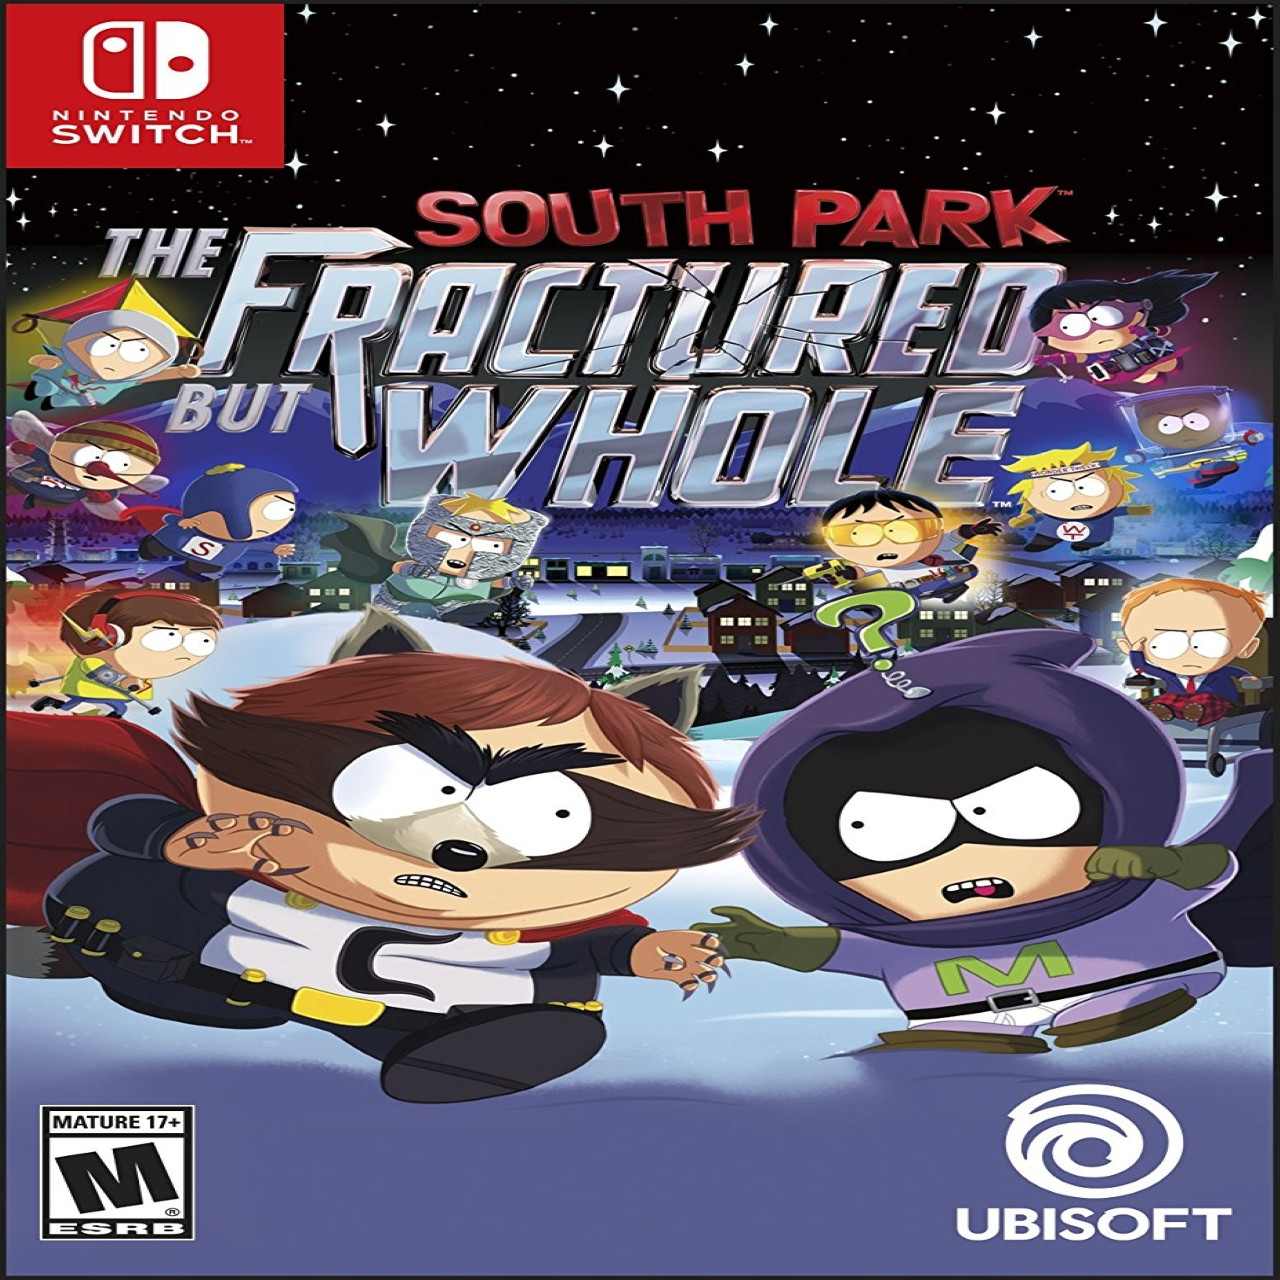 South Park The Fractured but Whole SUB Nintendo Switch (NEW)